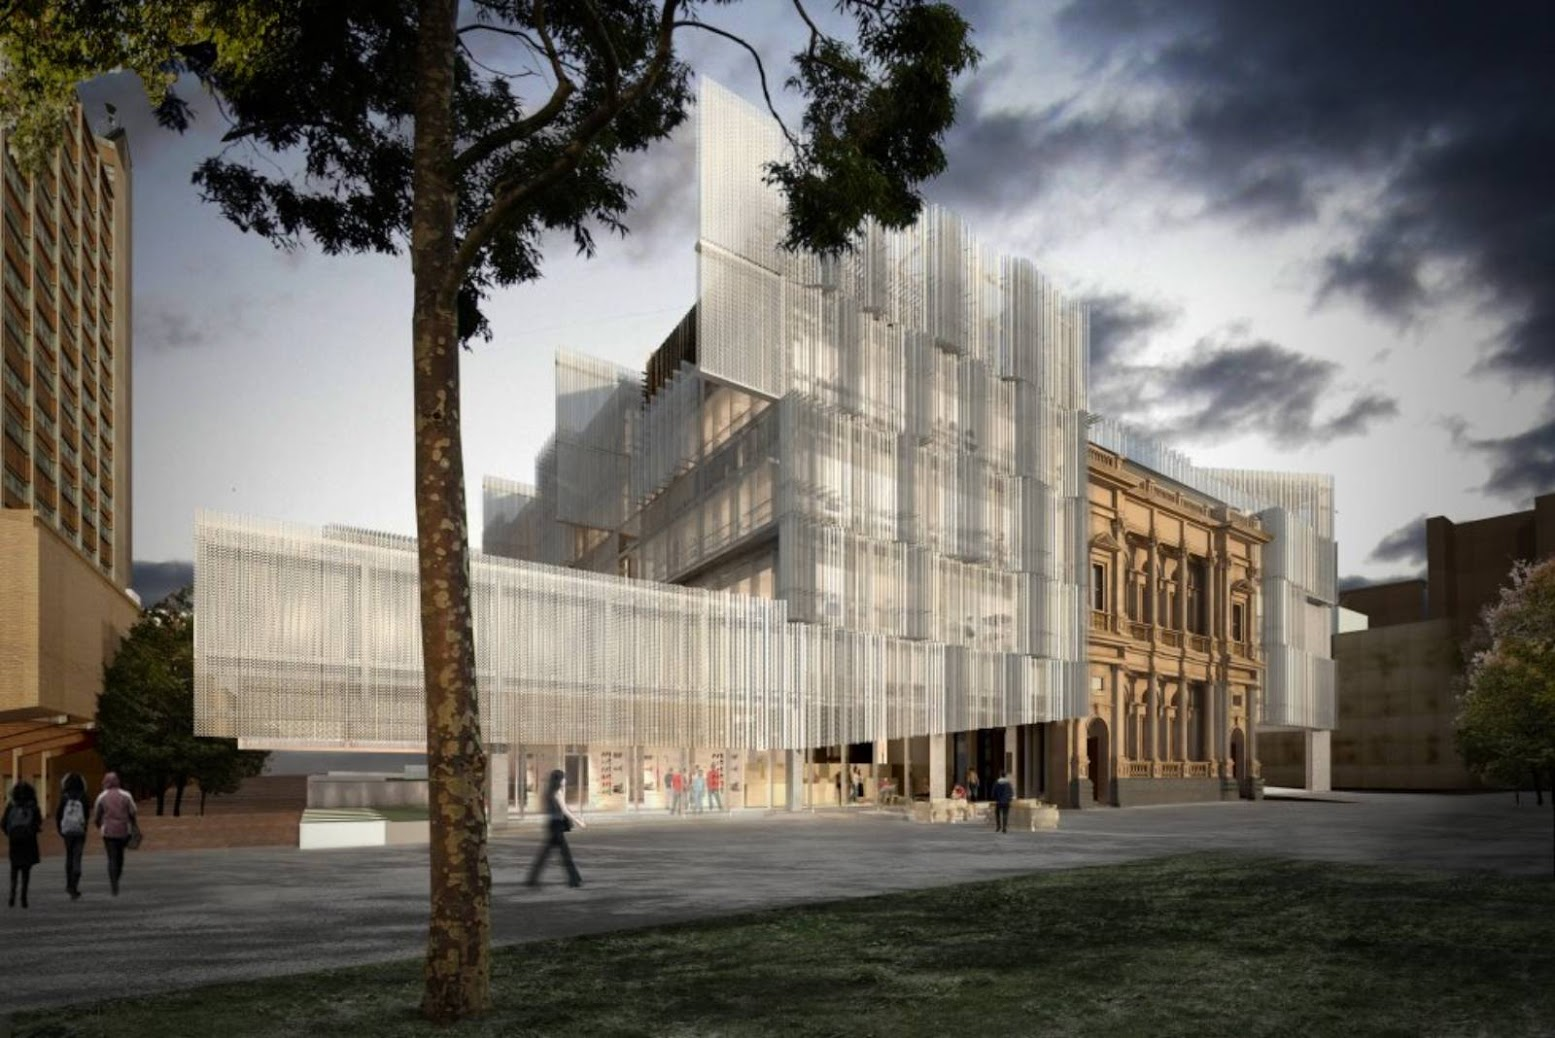 Melbourne Victoria, Australia: [UNIVERSITY OF MELBOURNE BY JWA & NADAAA]